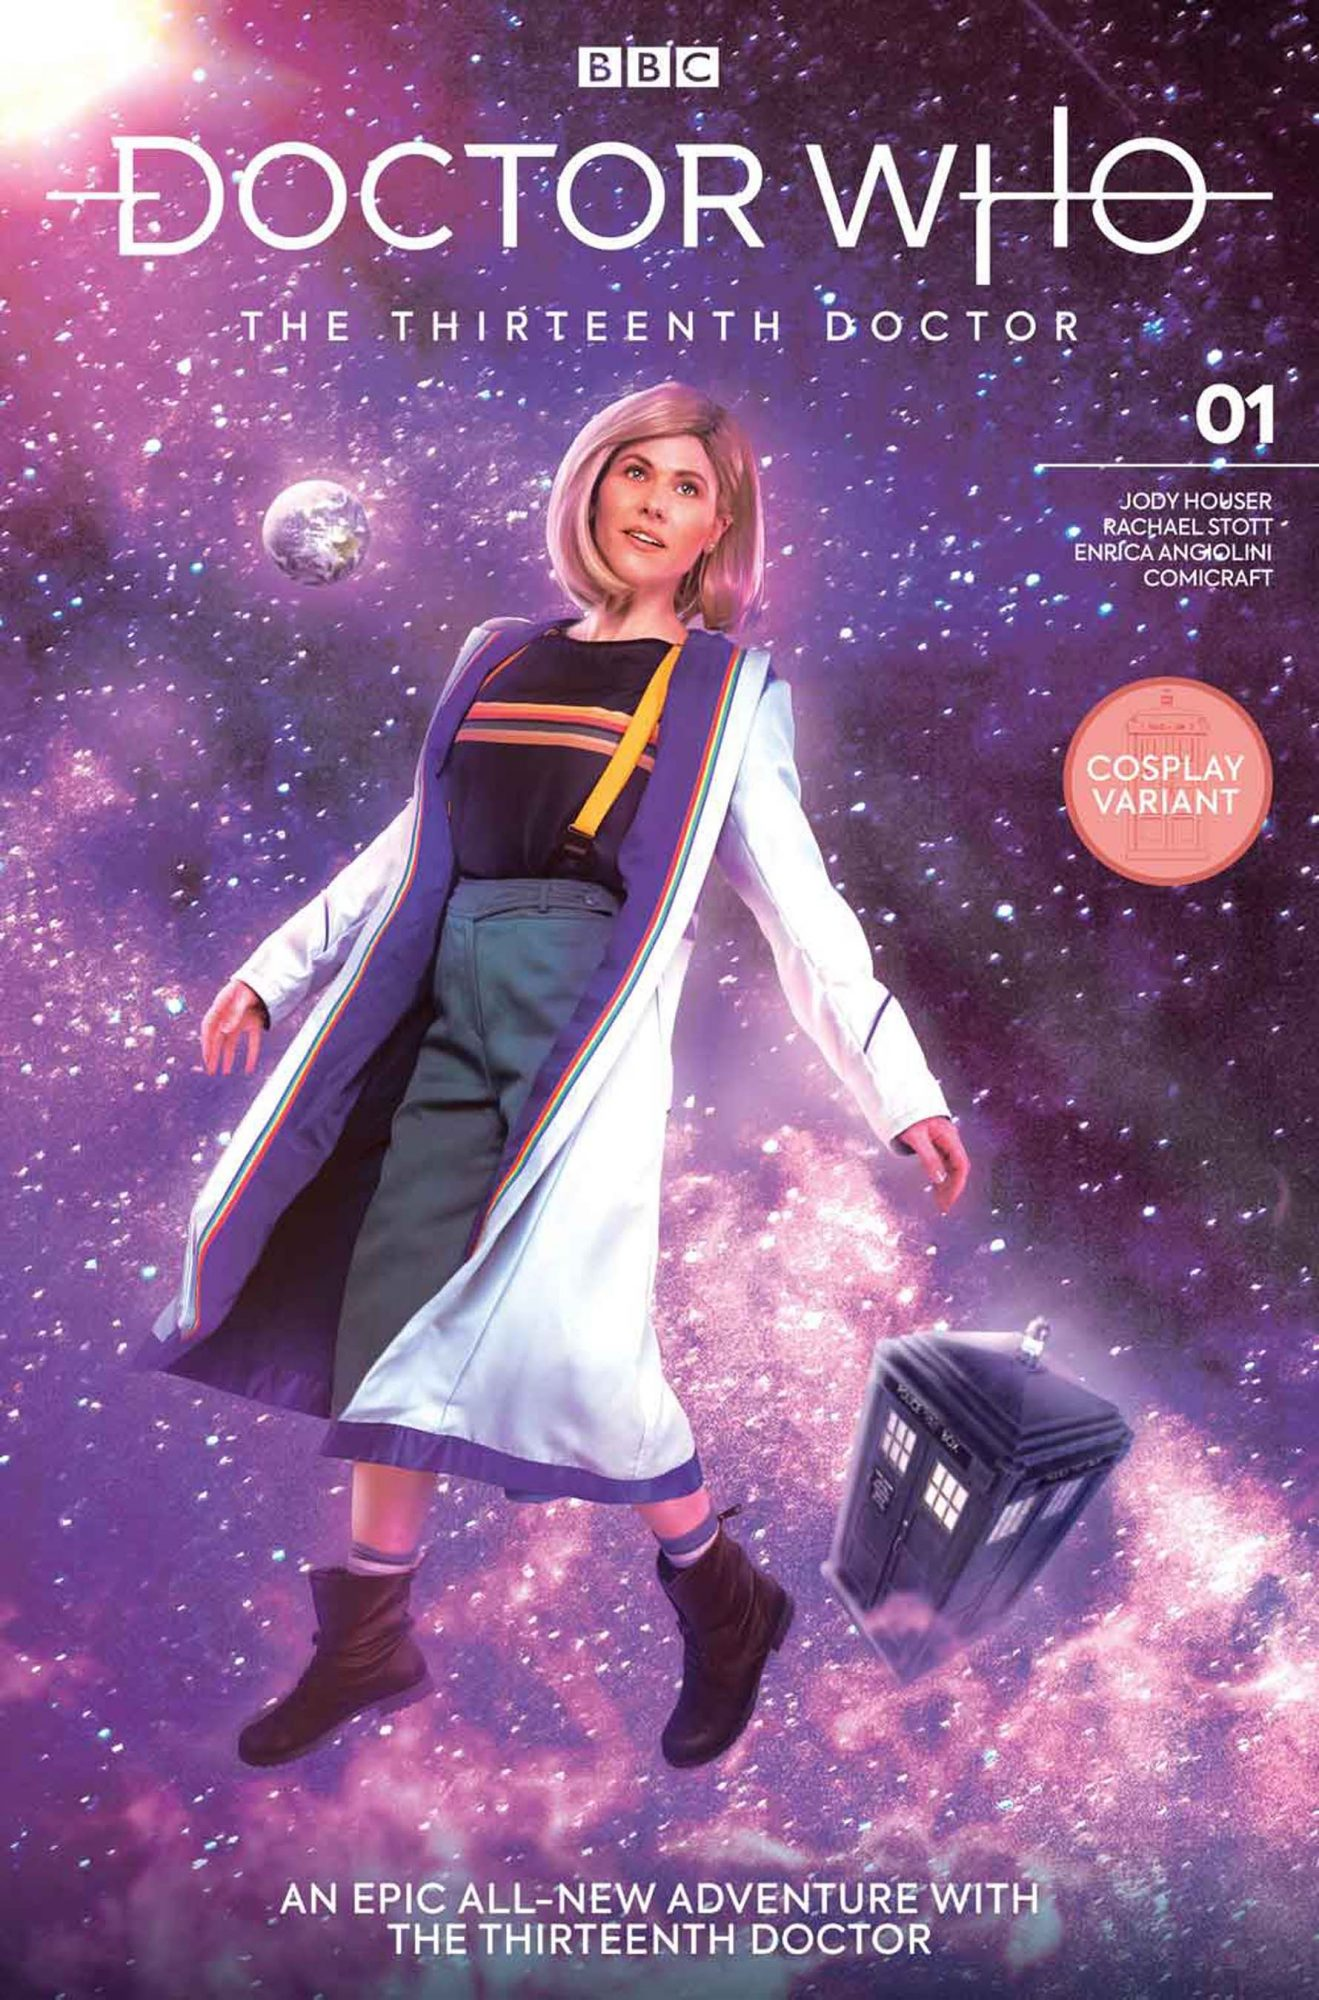 Doctor Who #1 Variant CoversThe Thirteenth DoctorCredit: Titan Comics